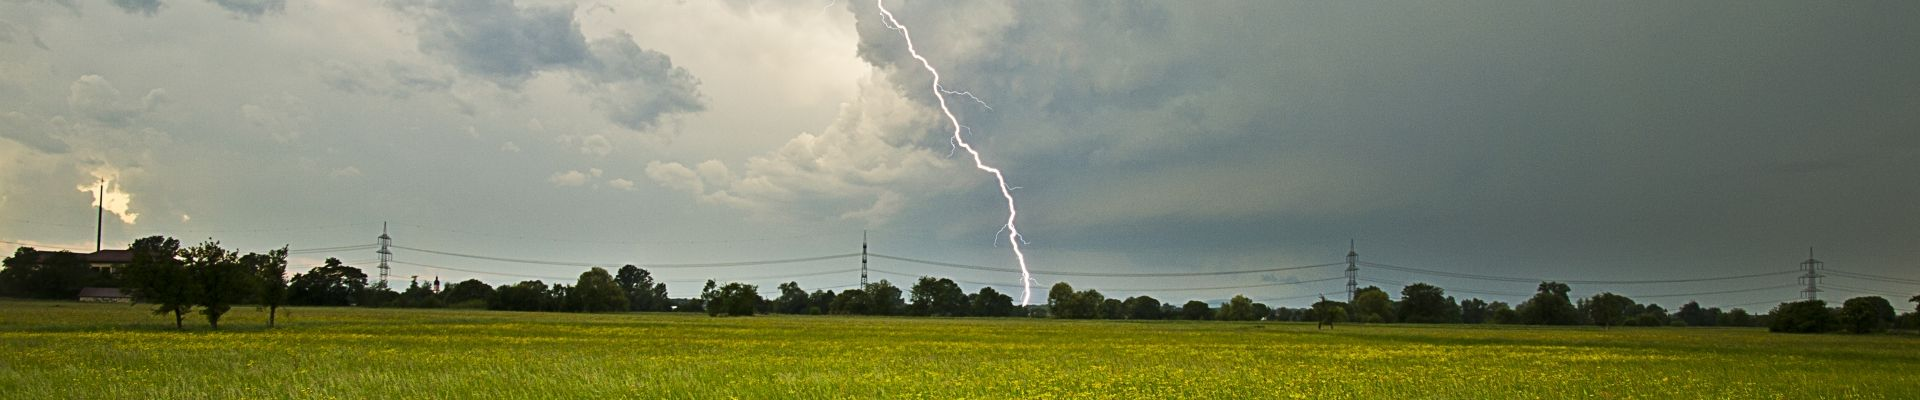 lightning and power line